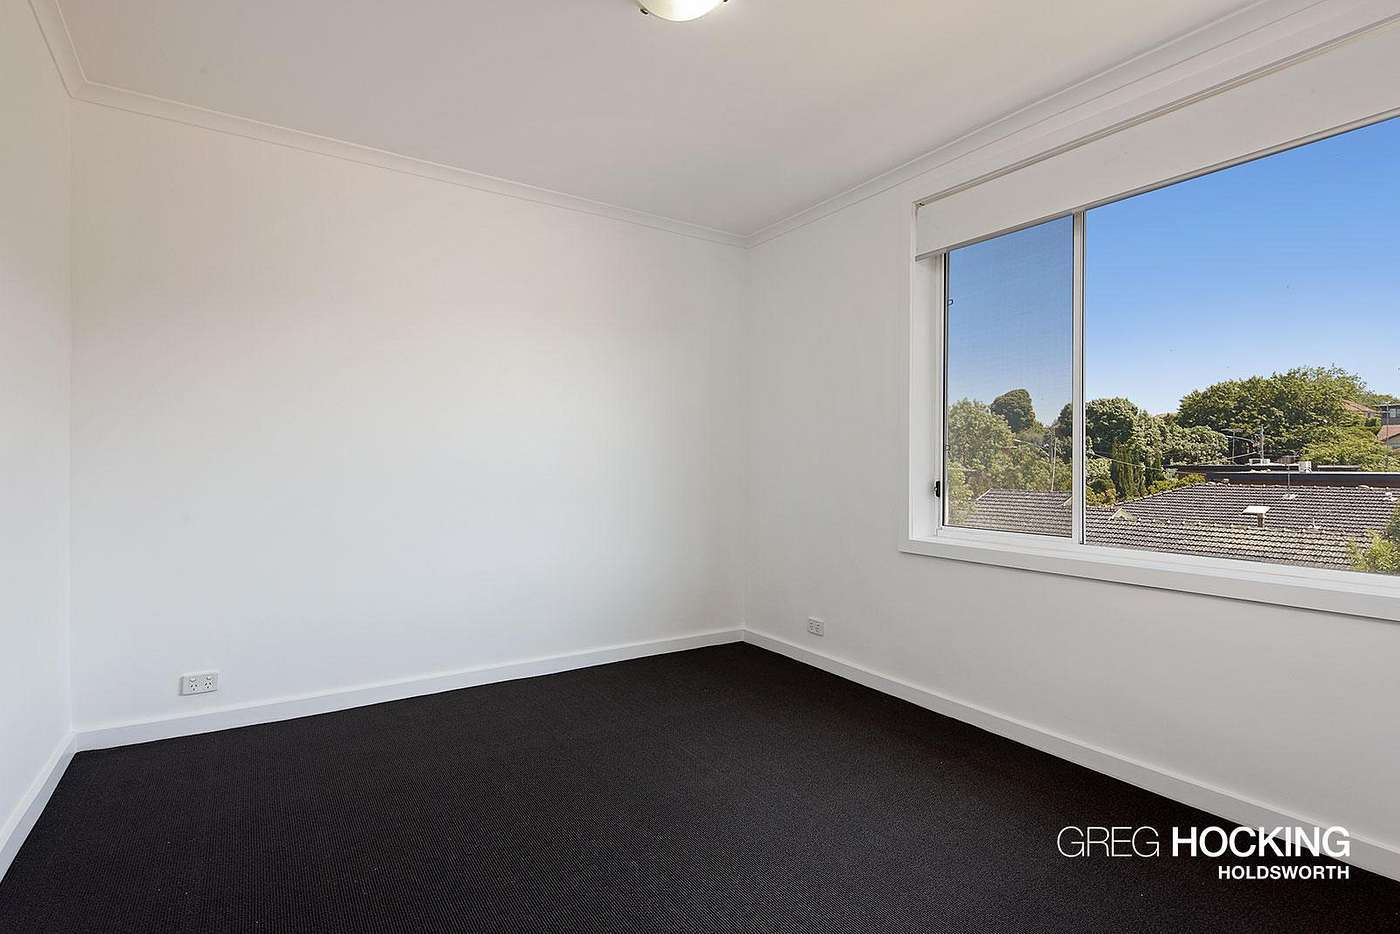 Sixth view of Homely apartment listing, 8/1 Marne Street, St Kilda East VIC 3183